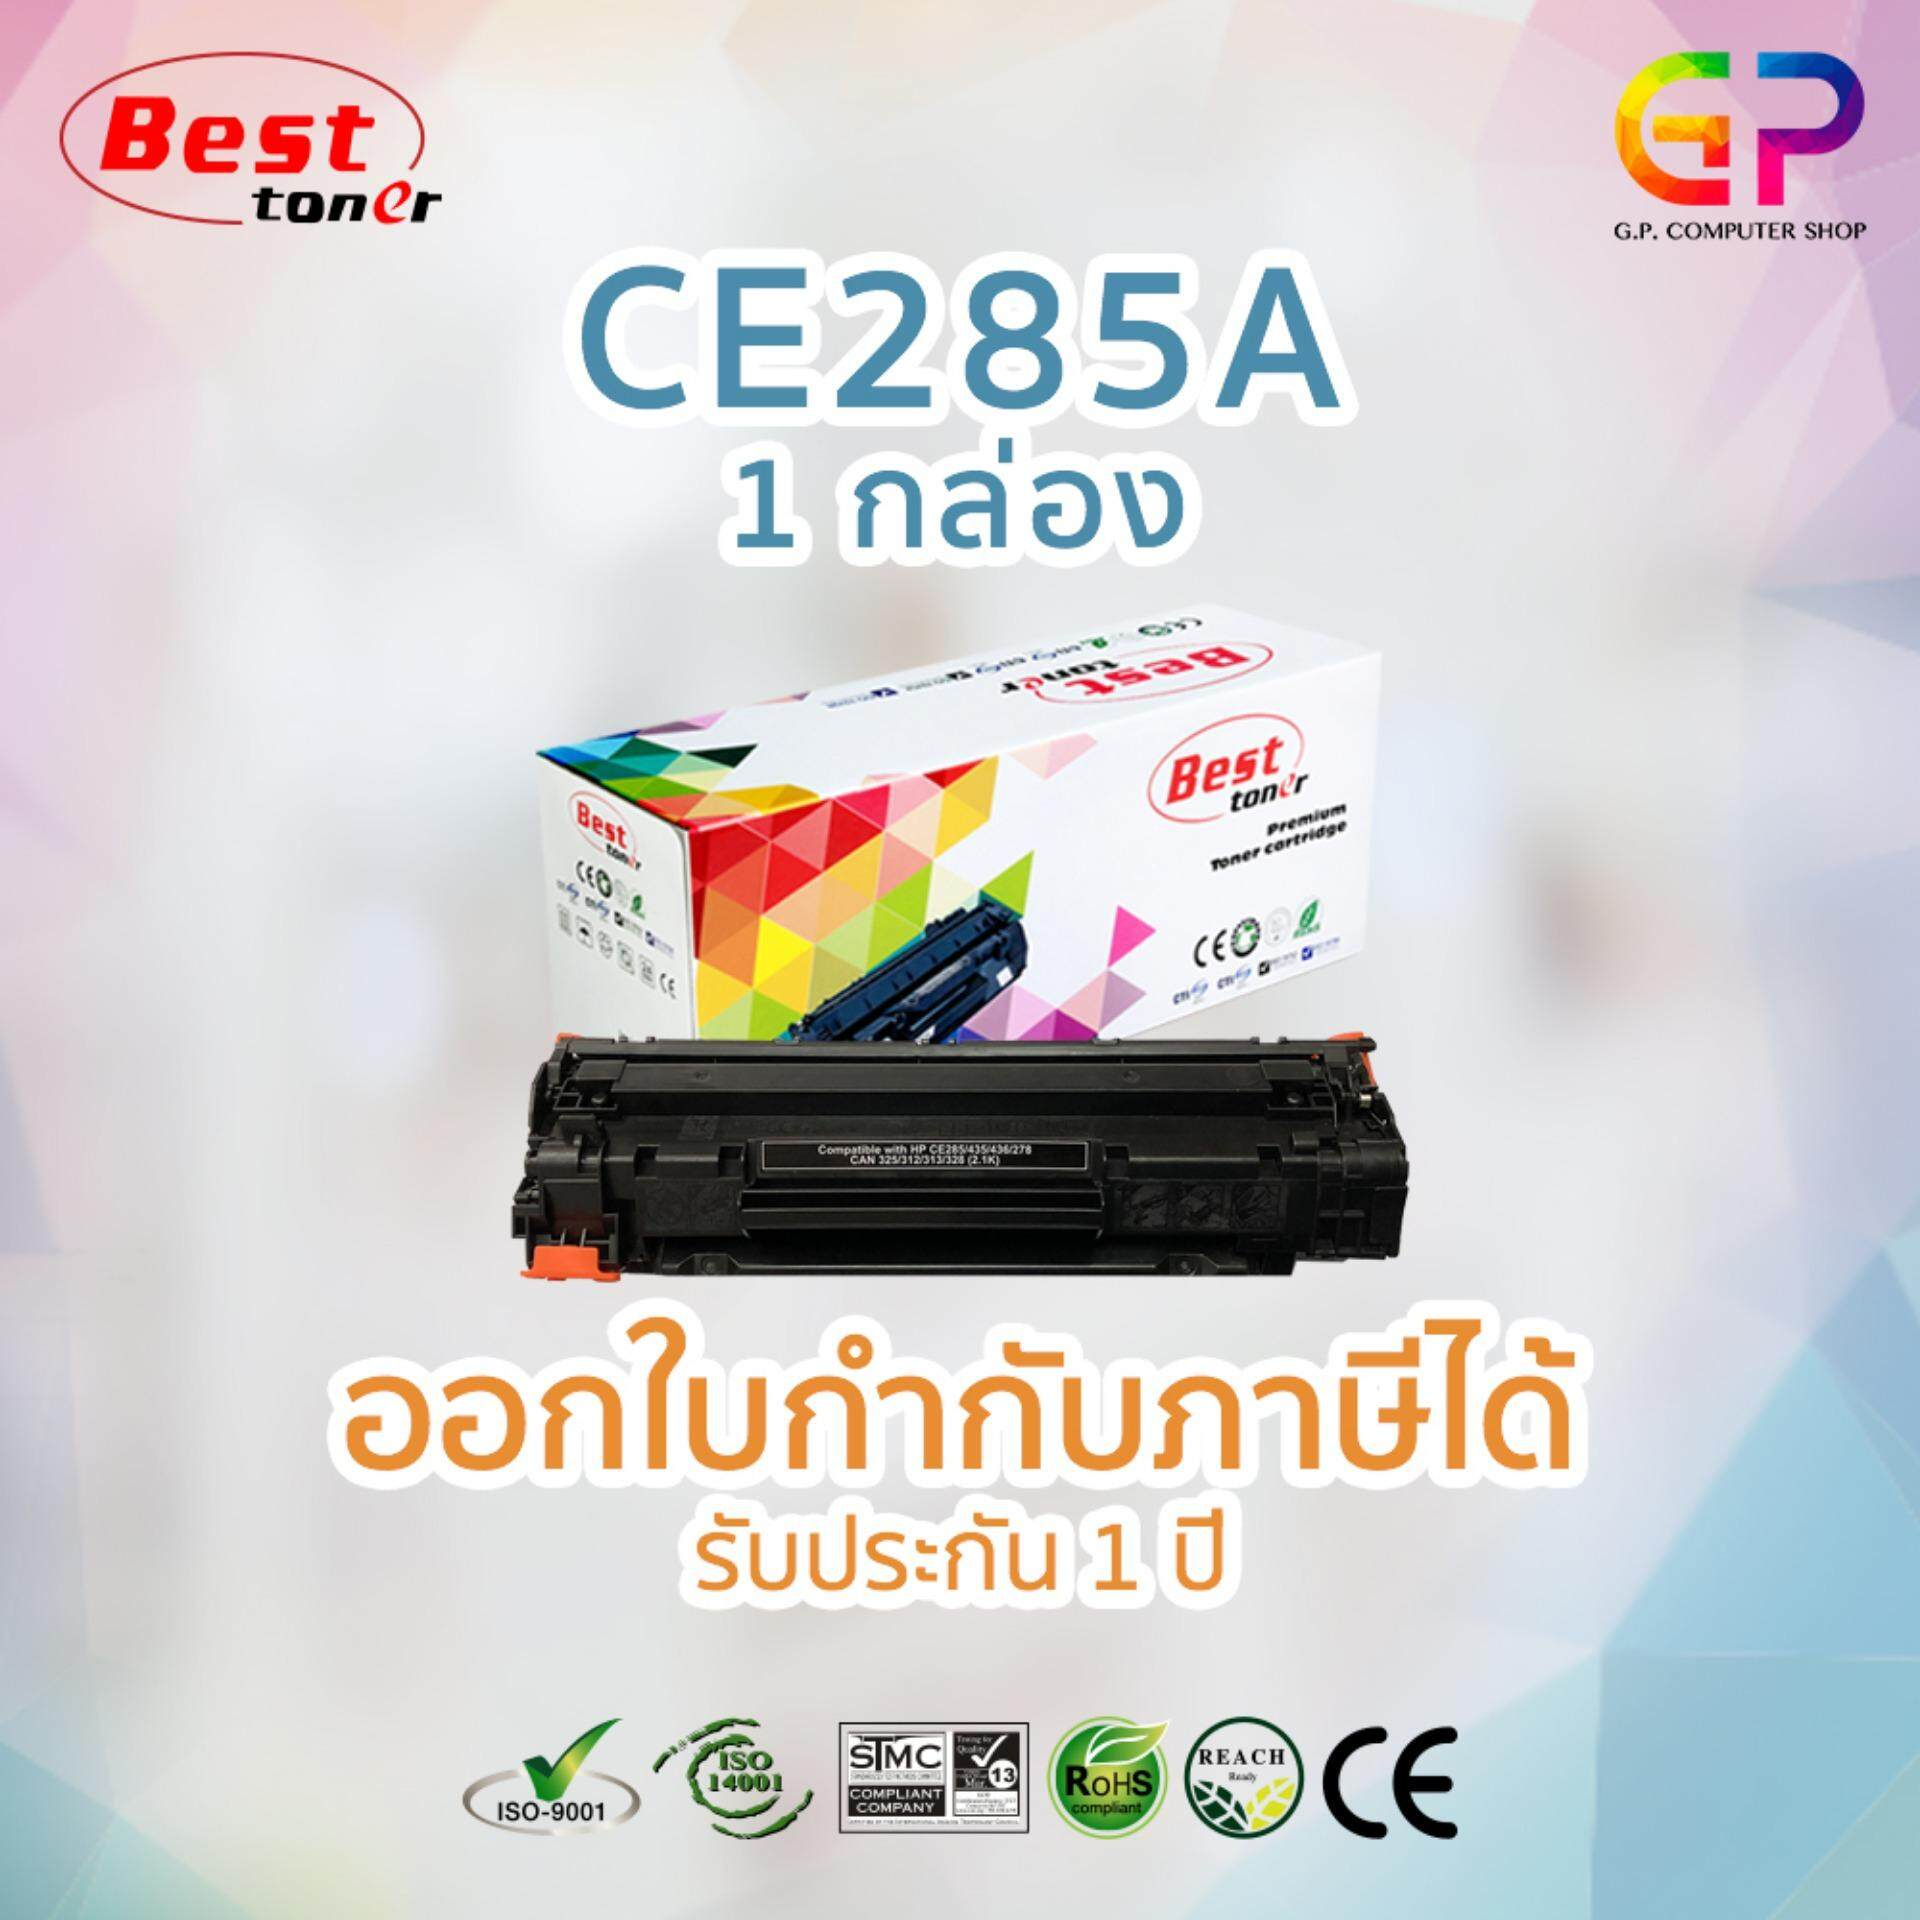 Best Toner HP CE285A (85A) (สีดำ)